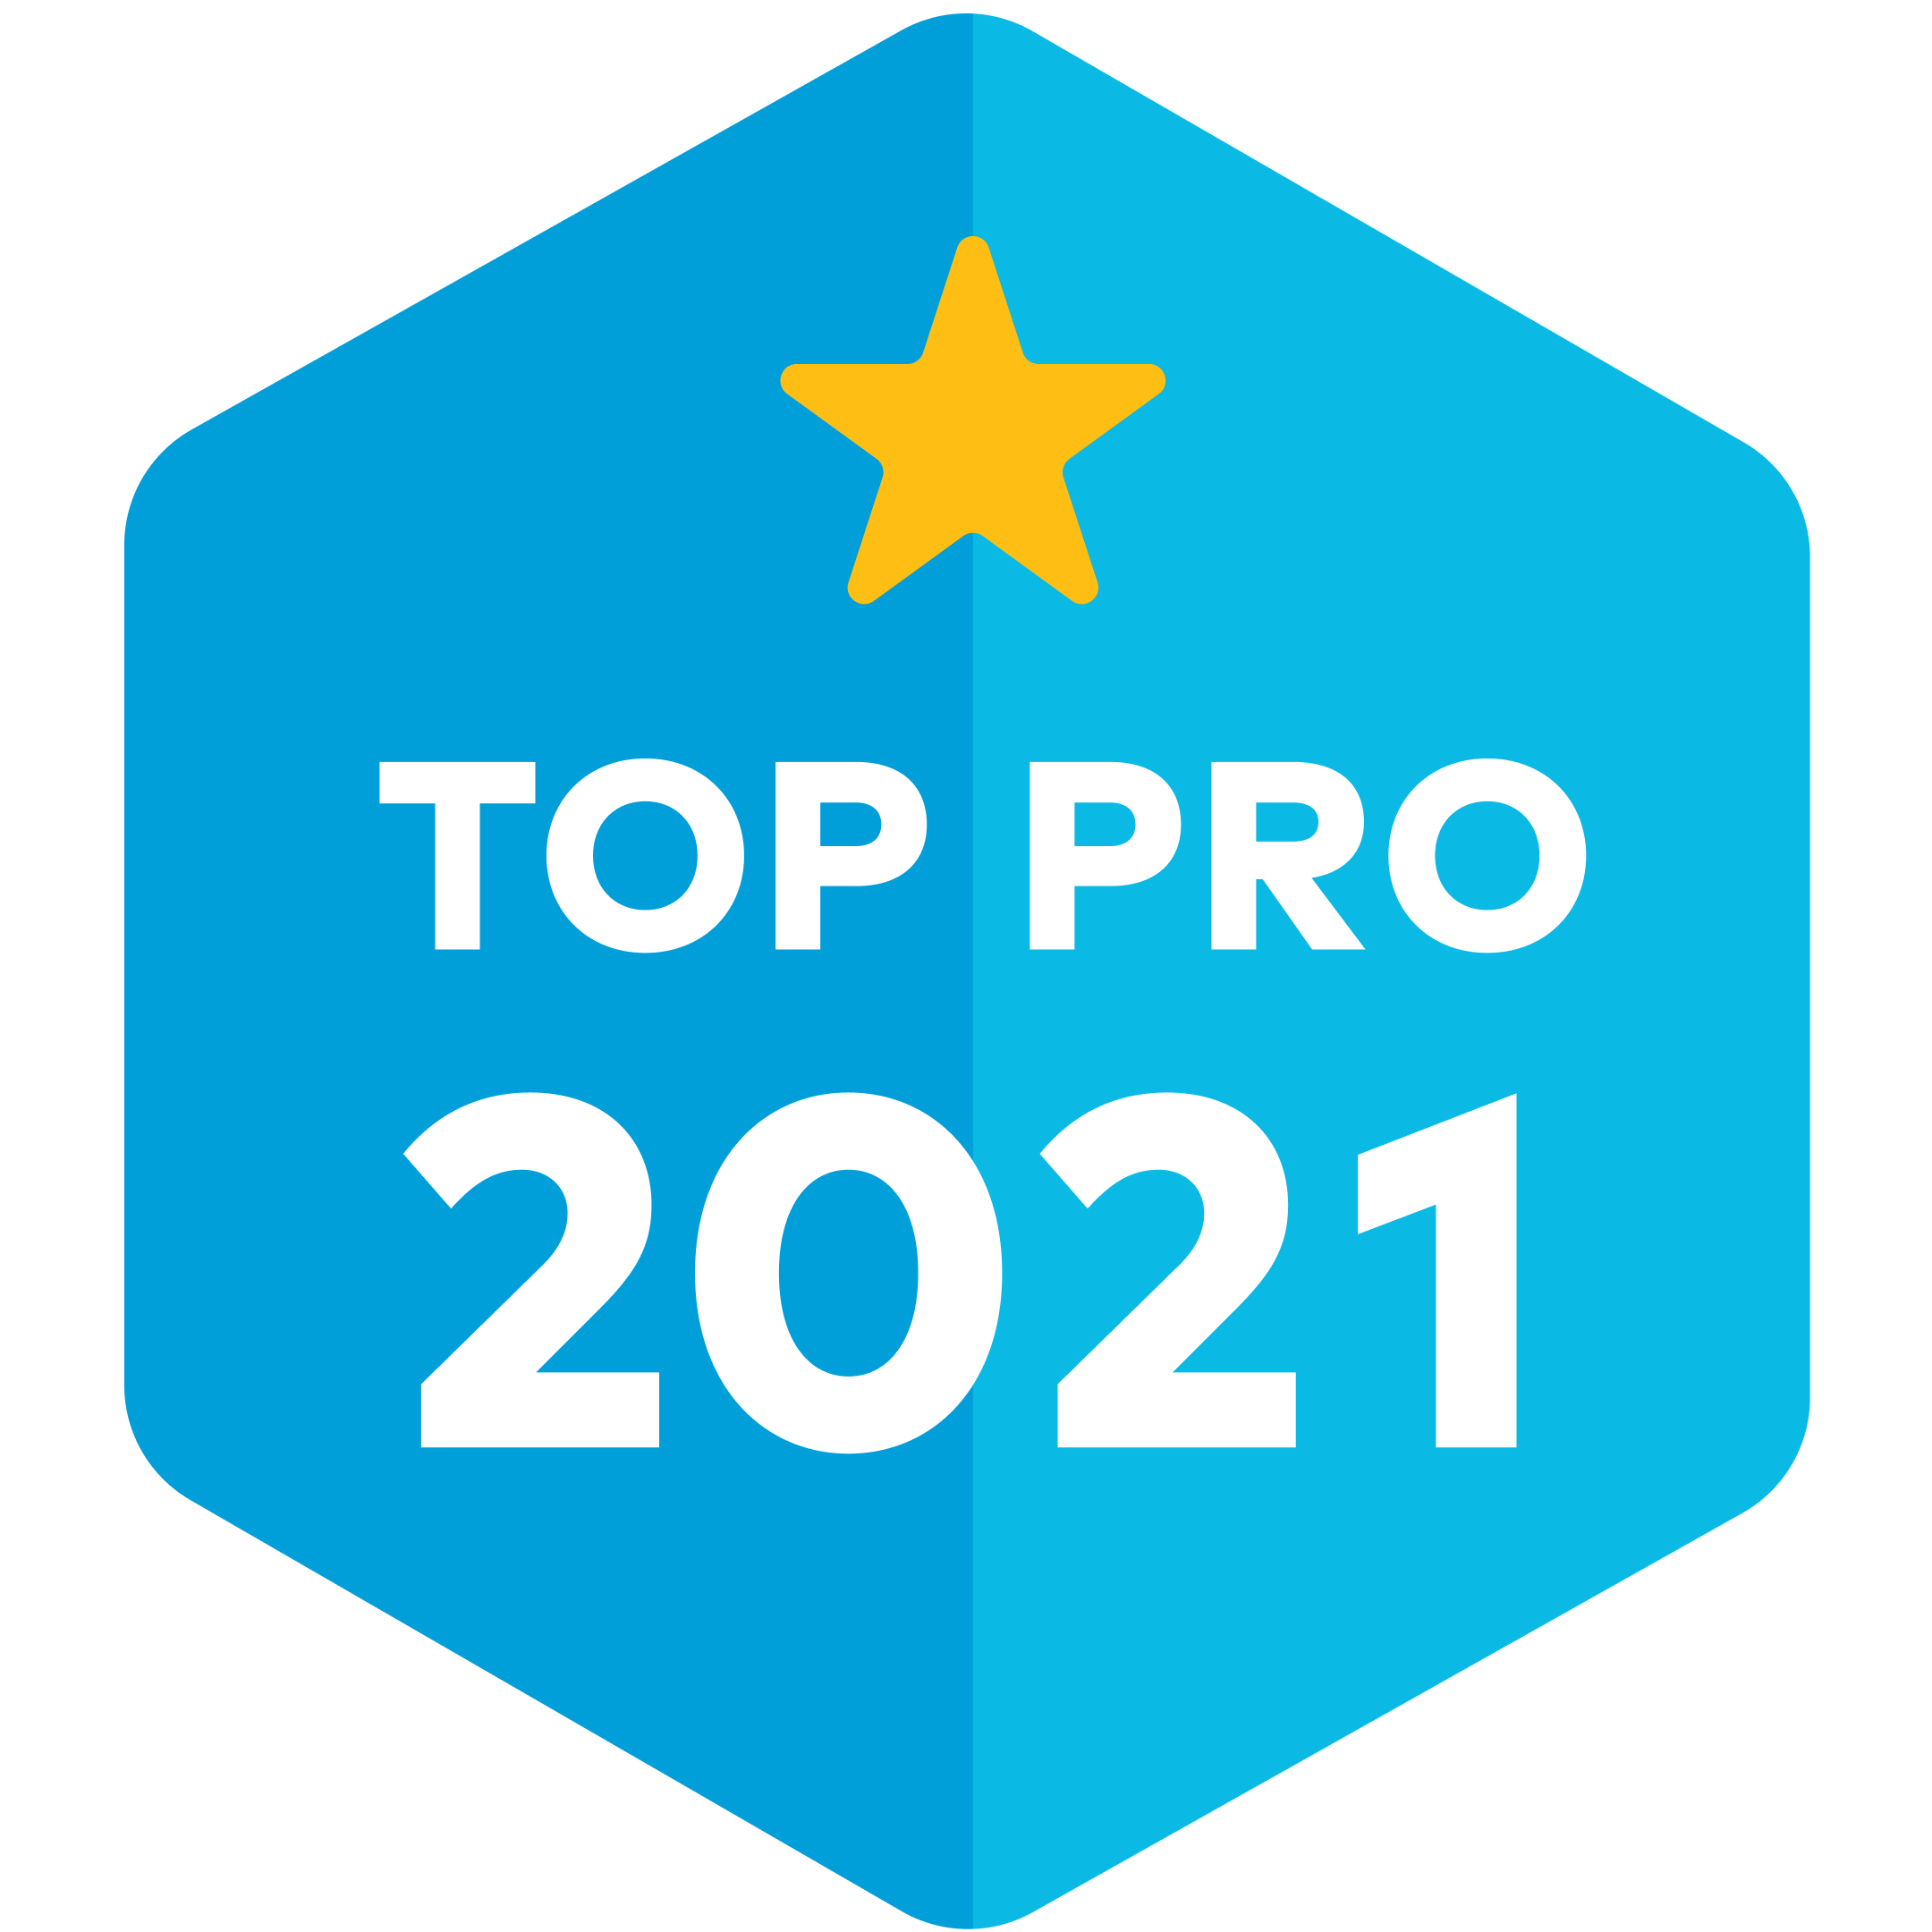 Miche Pest Control is a Top Pro On Thumbtack For 2020 & 2021